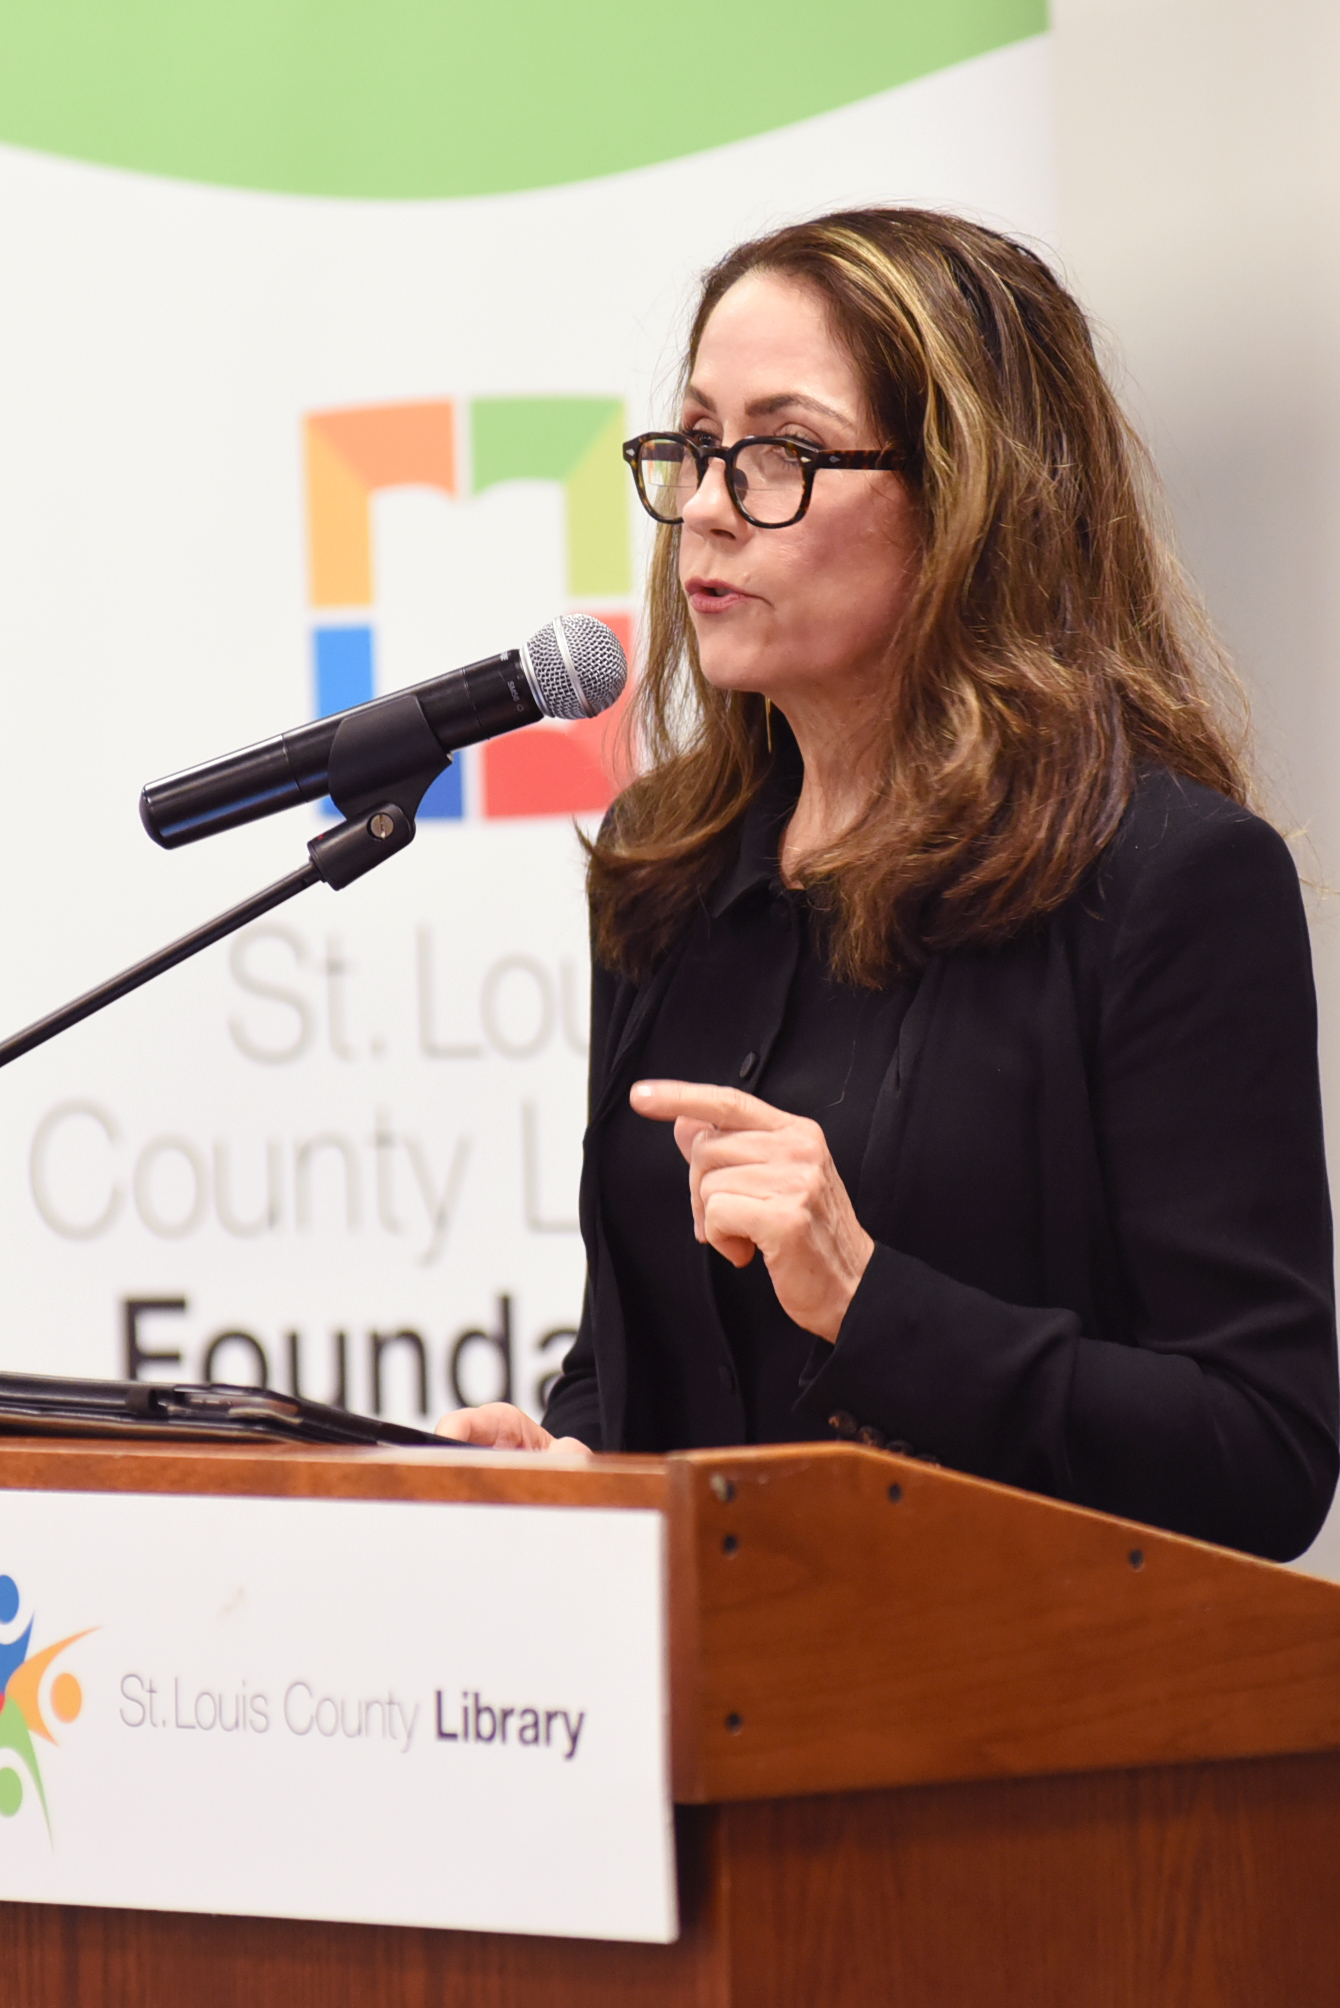 Karr speaking at the [[St. Louis County Library]] on September 8, 2016